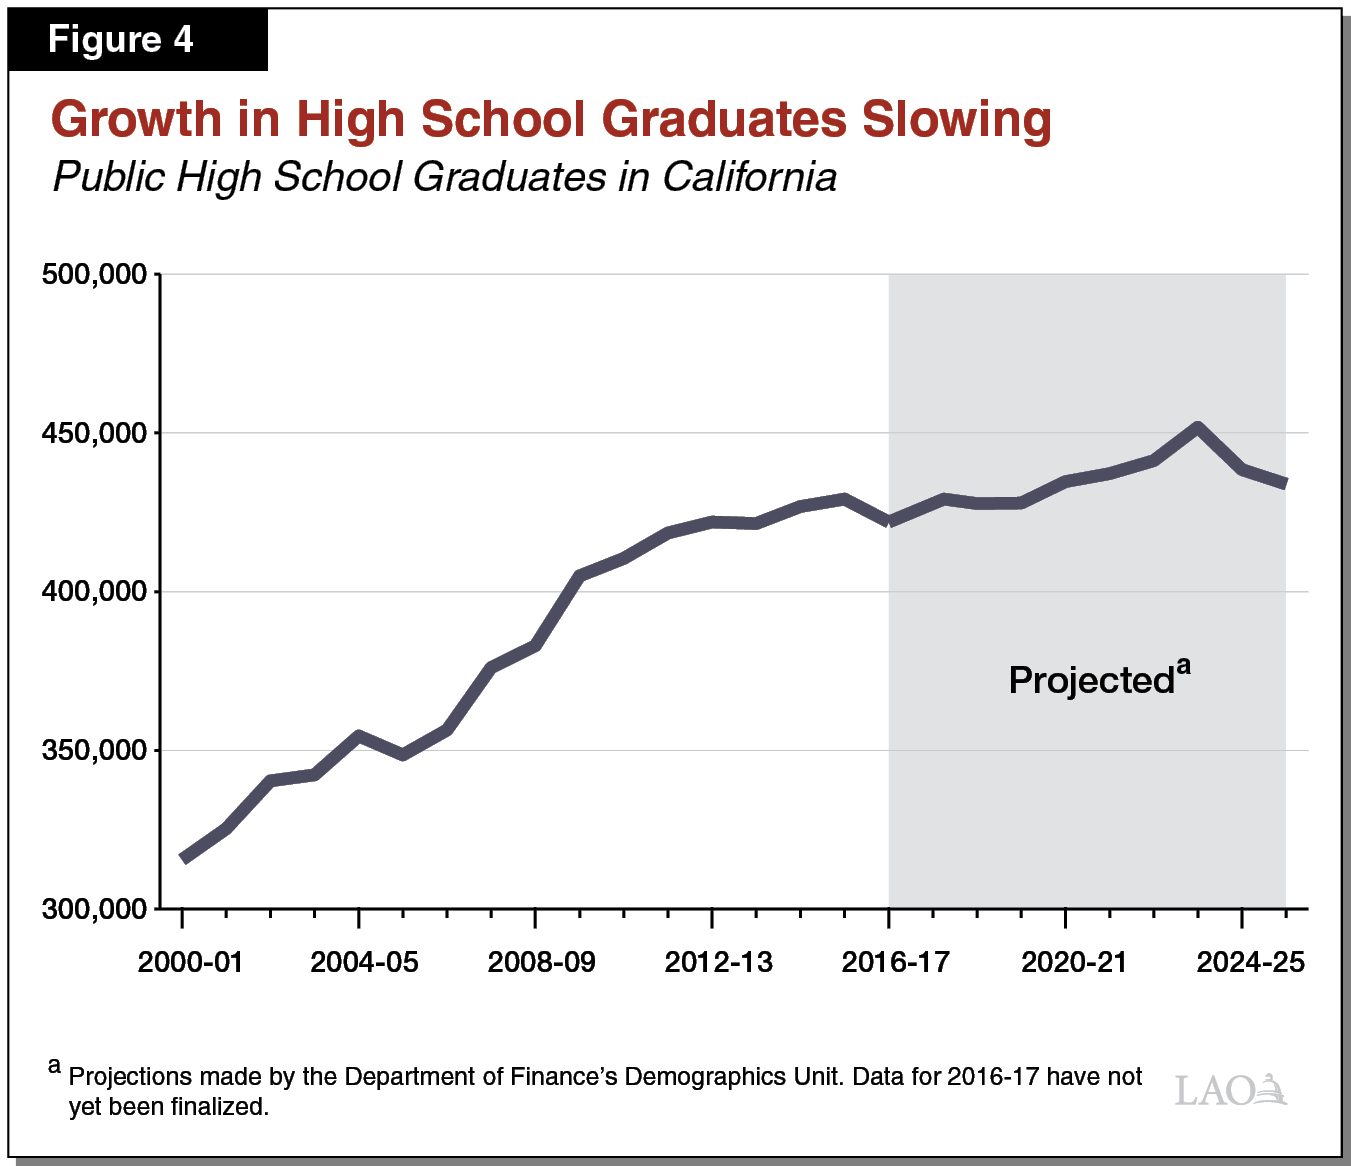 Figure 4 - Growth in High School Graduates Slowing